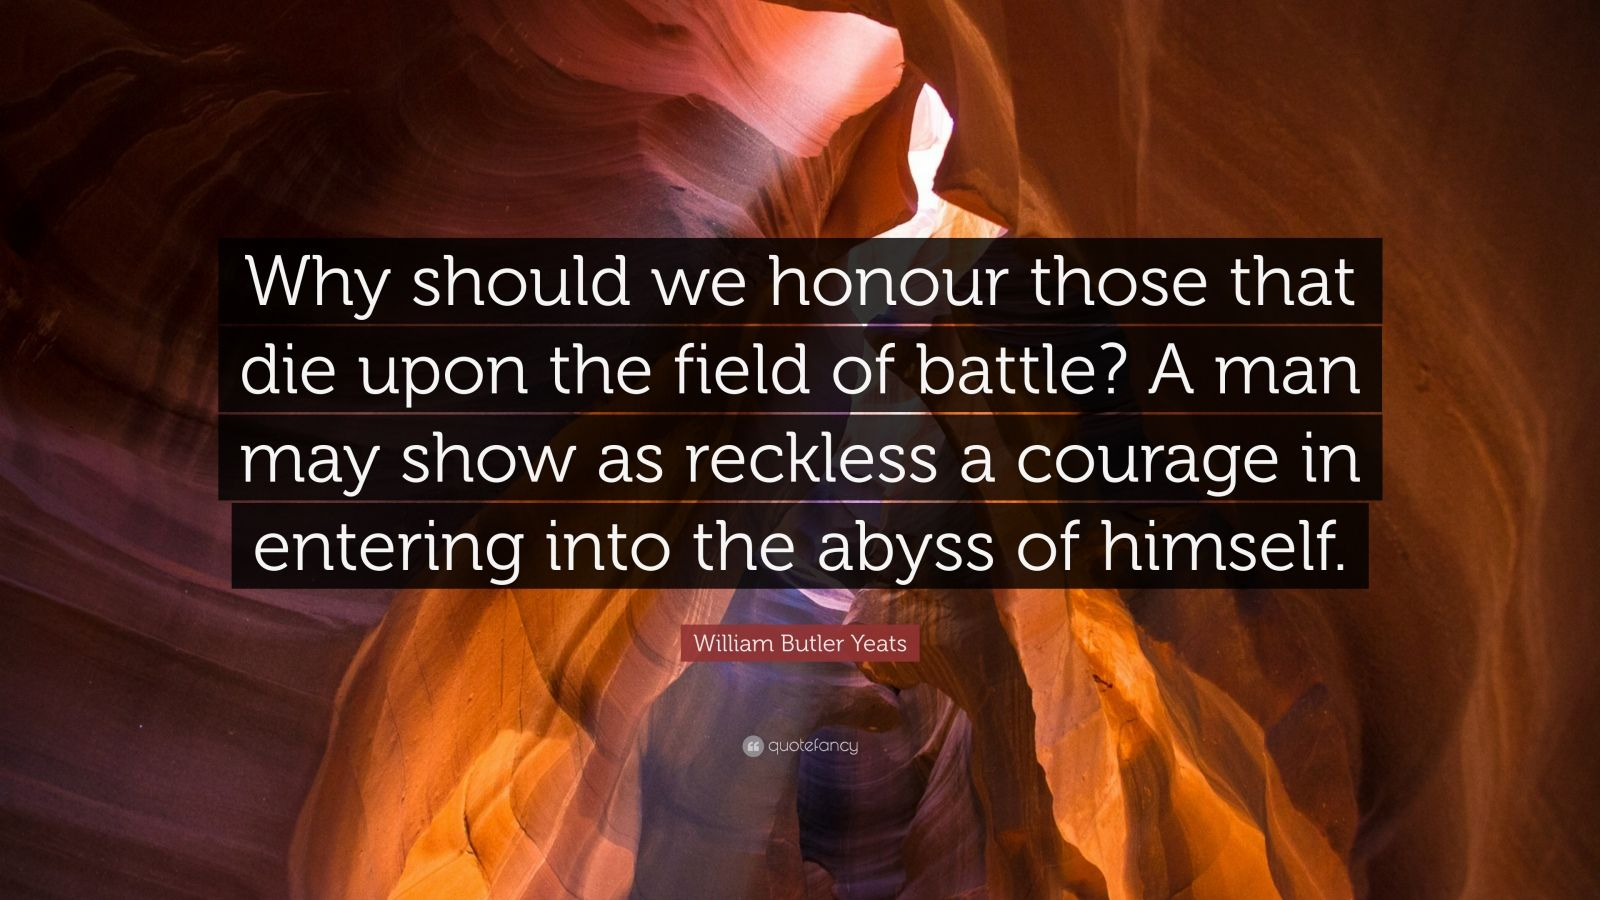 """William Butler Yeats Quote: """"Why should we honour those that die upon the field of battle? A man may show as reckless a courage in entering into the abyss of himself."""""""